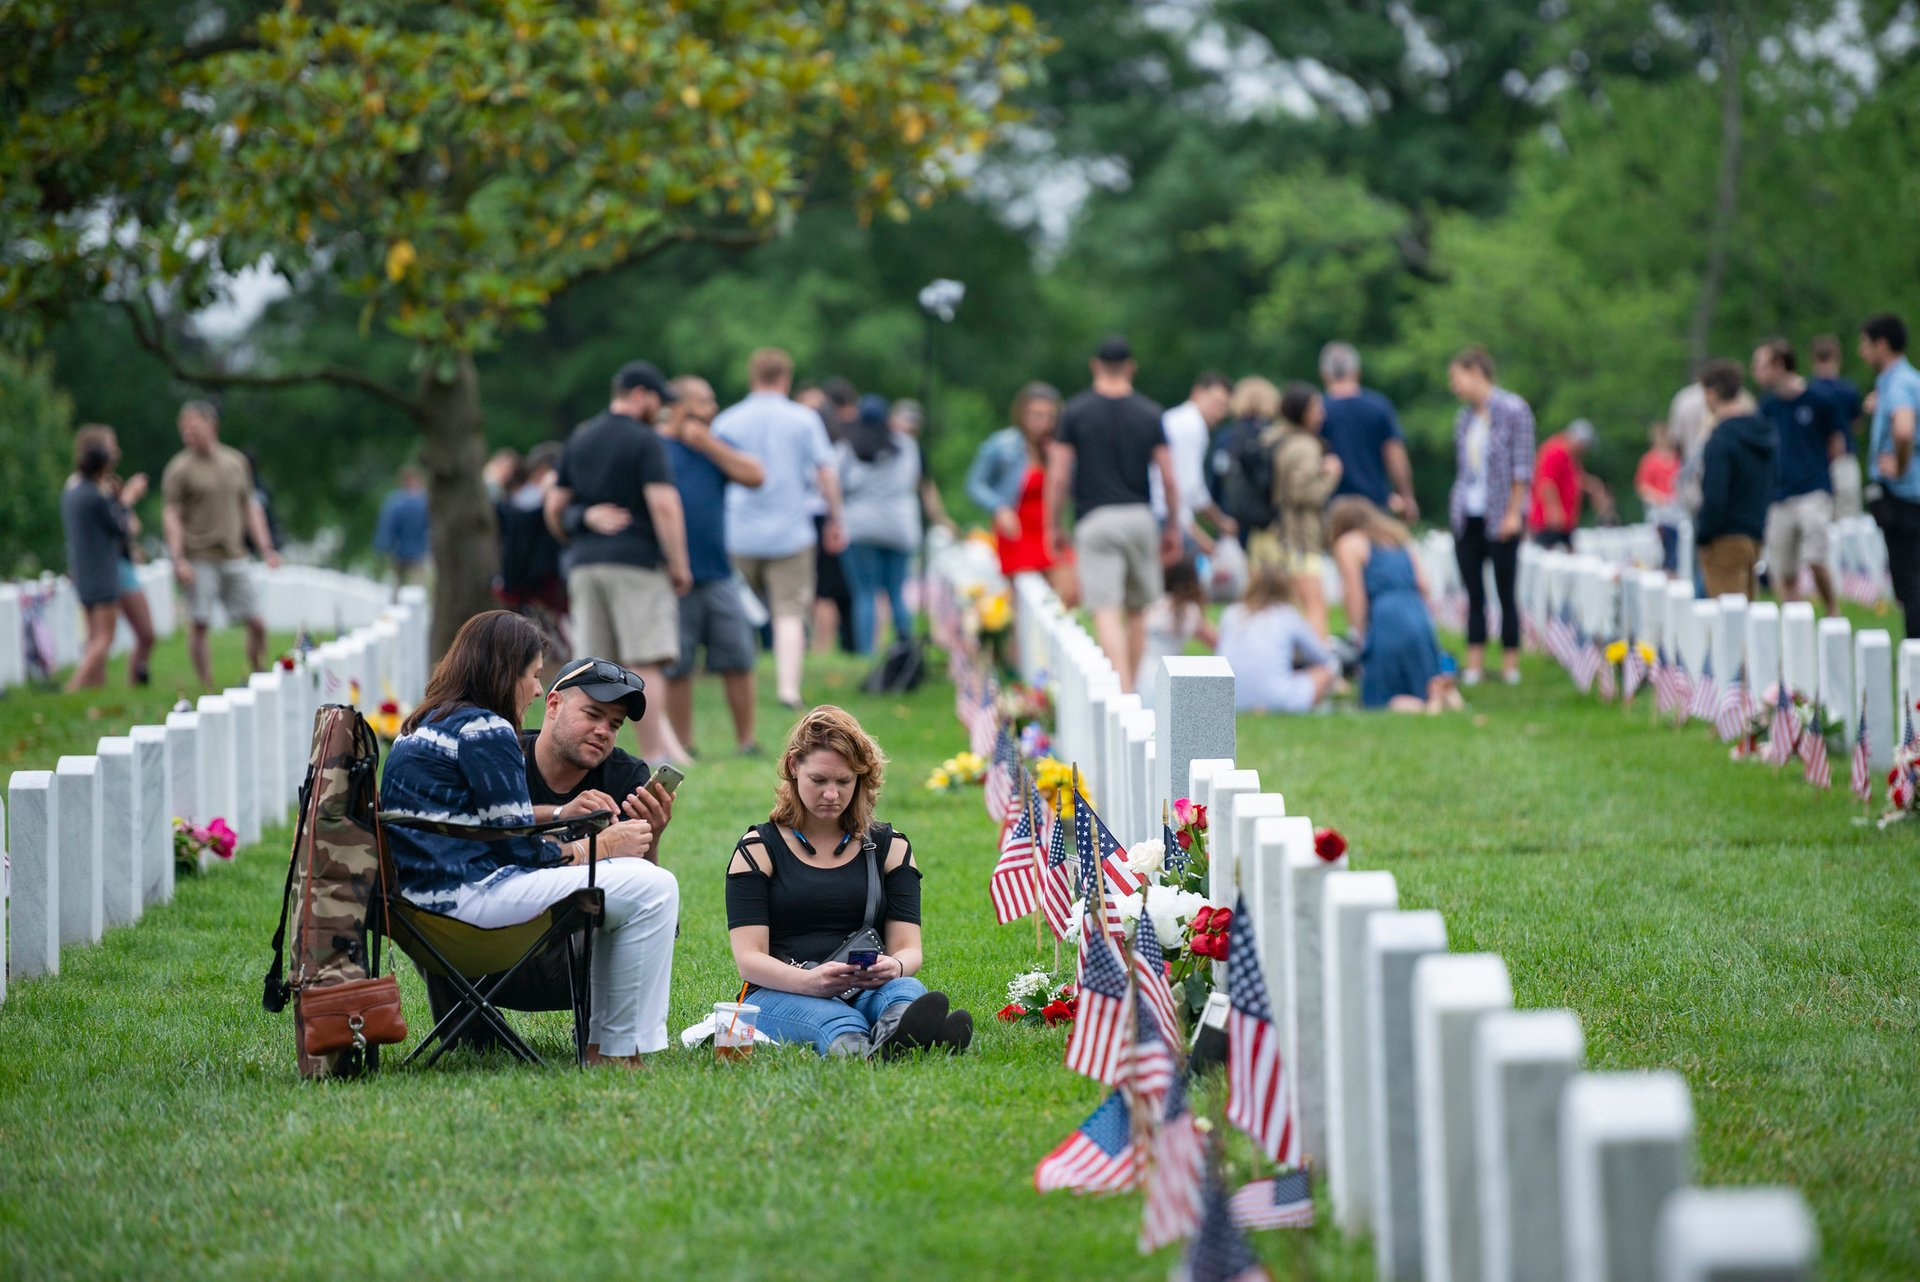 Family, friends, and visitors honor the fallen in Section 60 of Arlington National Cemetery, Arlington, Virginia 2020